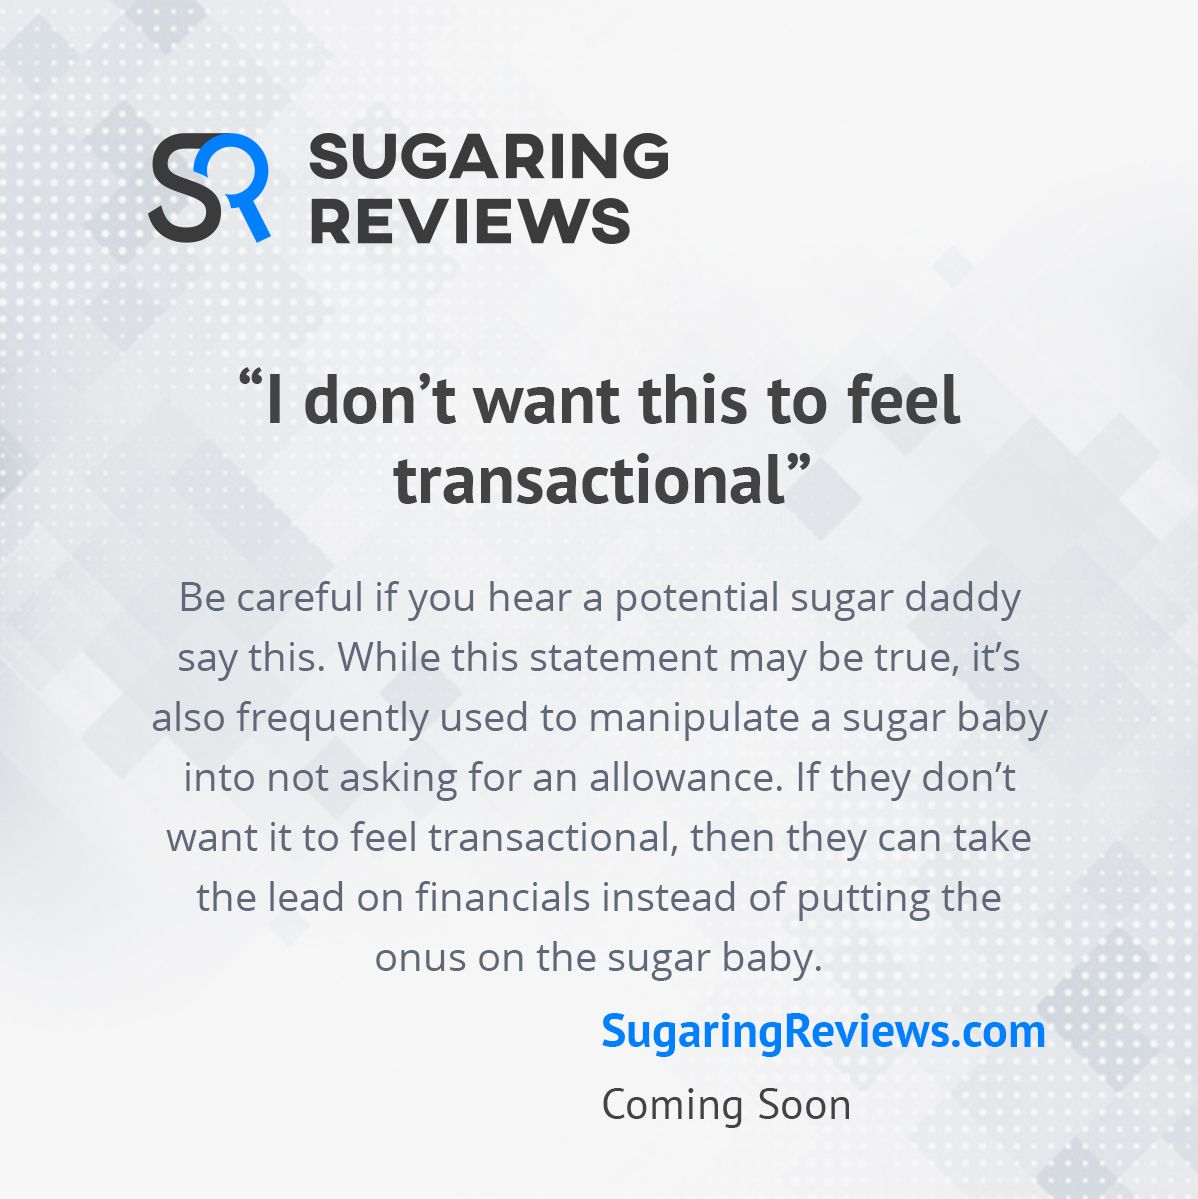 how do you know if a sugar daddy is scamming you